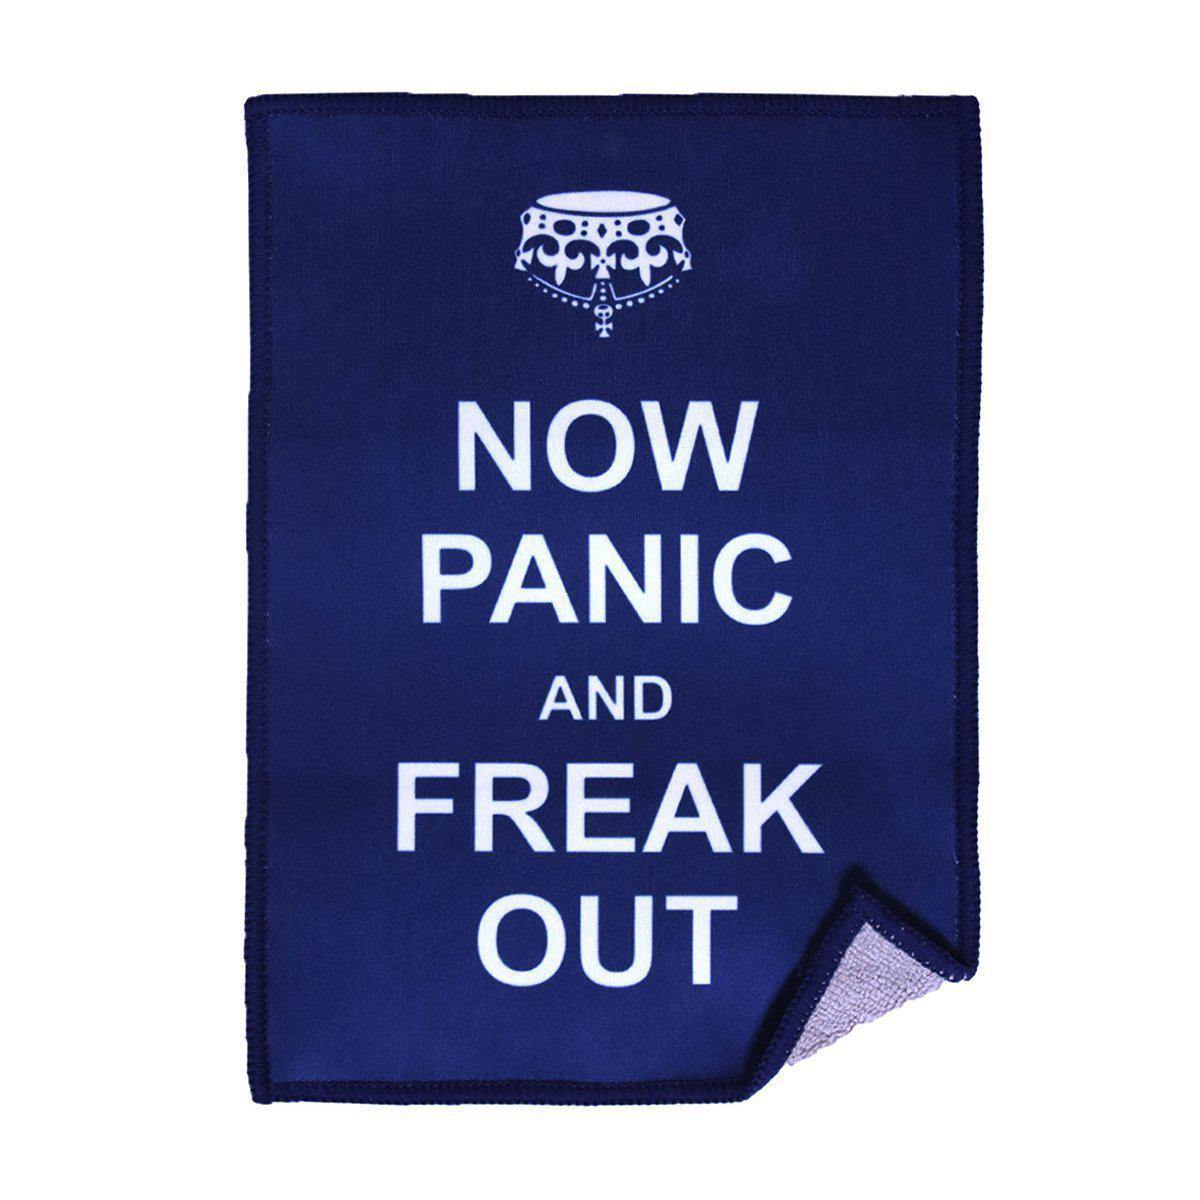 Image of saying Now Panic and Freak Out